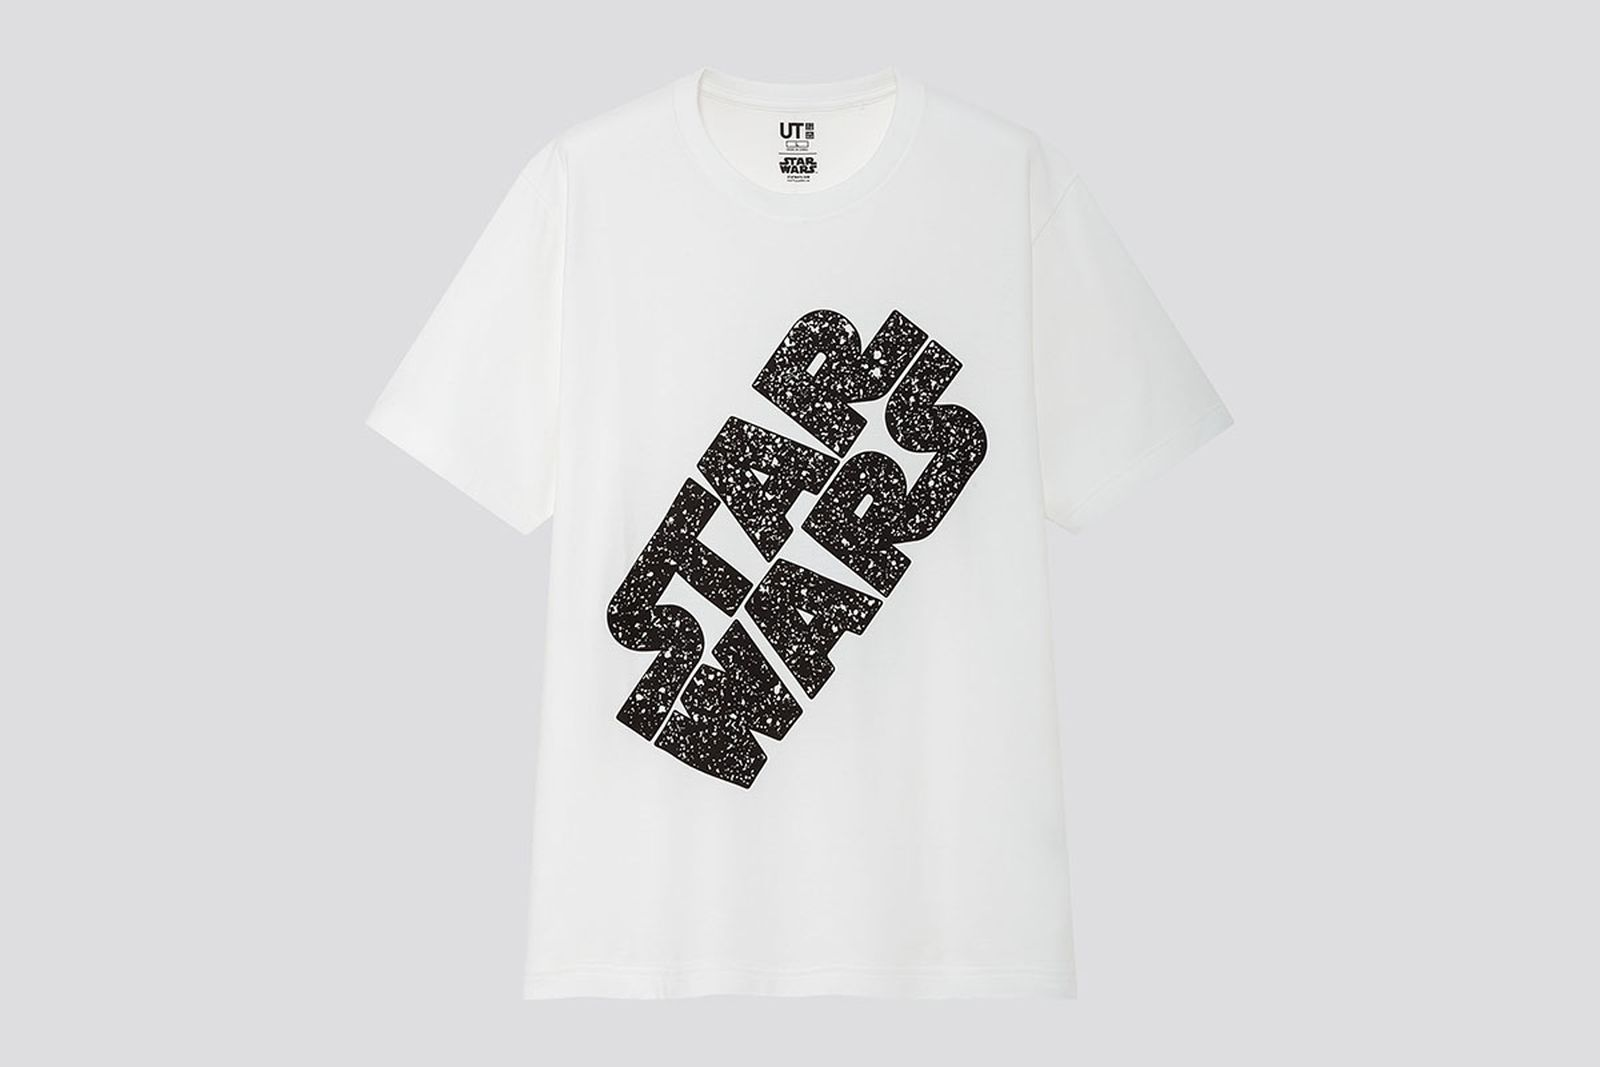 uniqlo-ut-star-wars-collection-12